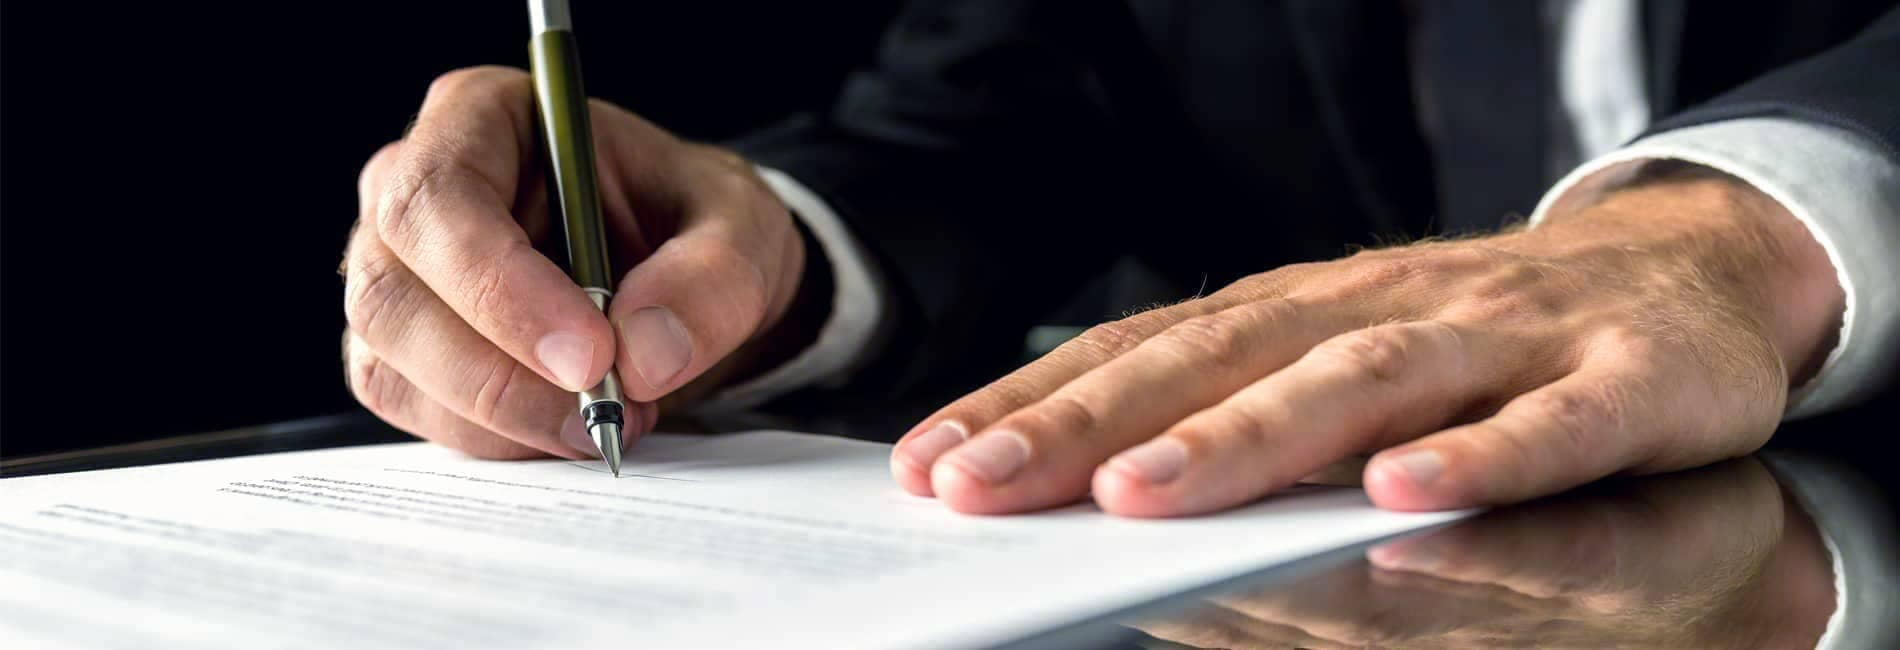 Hands-of-Man-in-Suit-Signing-Document